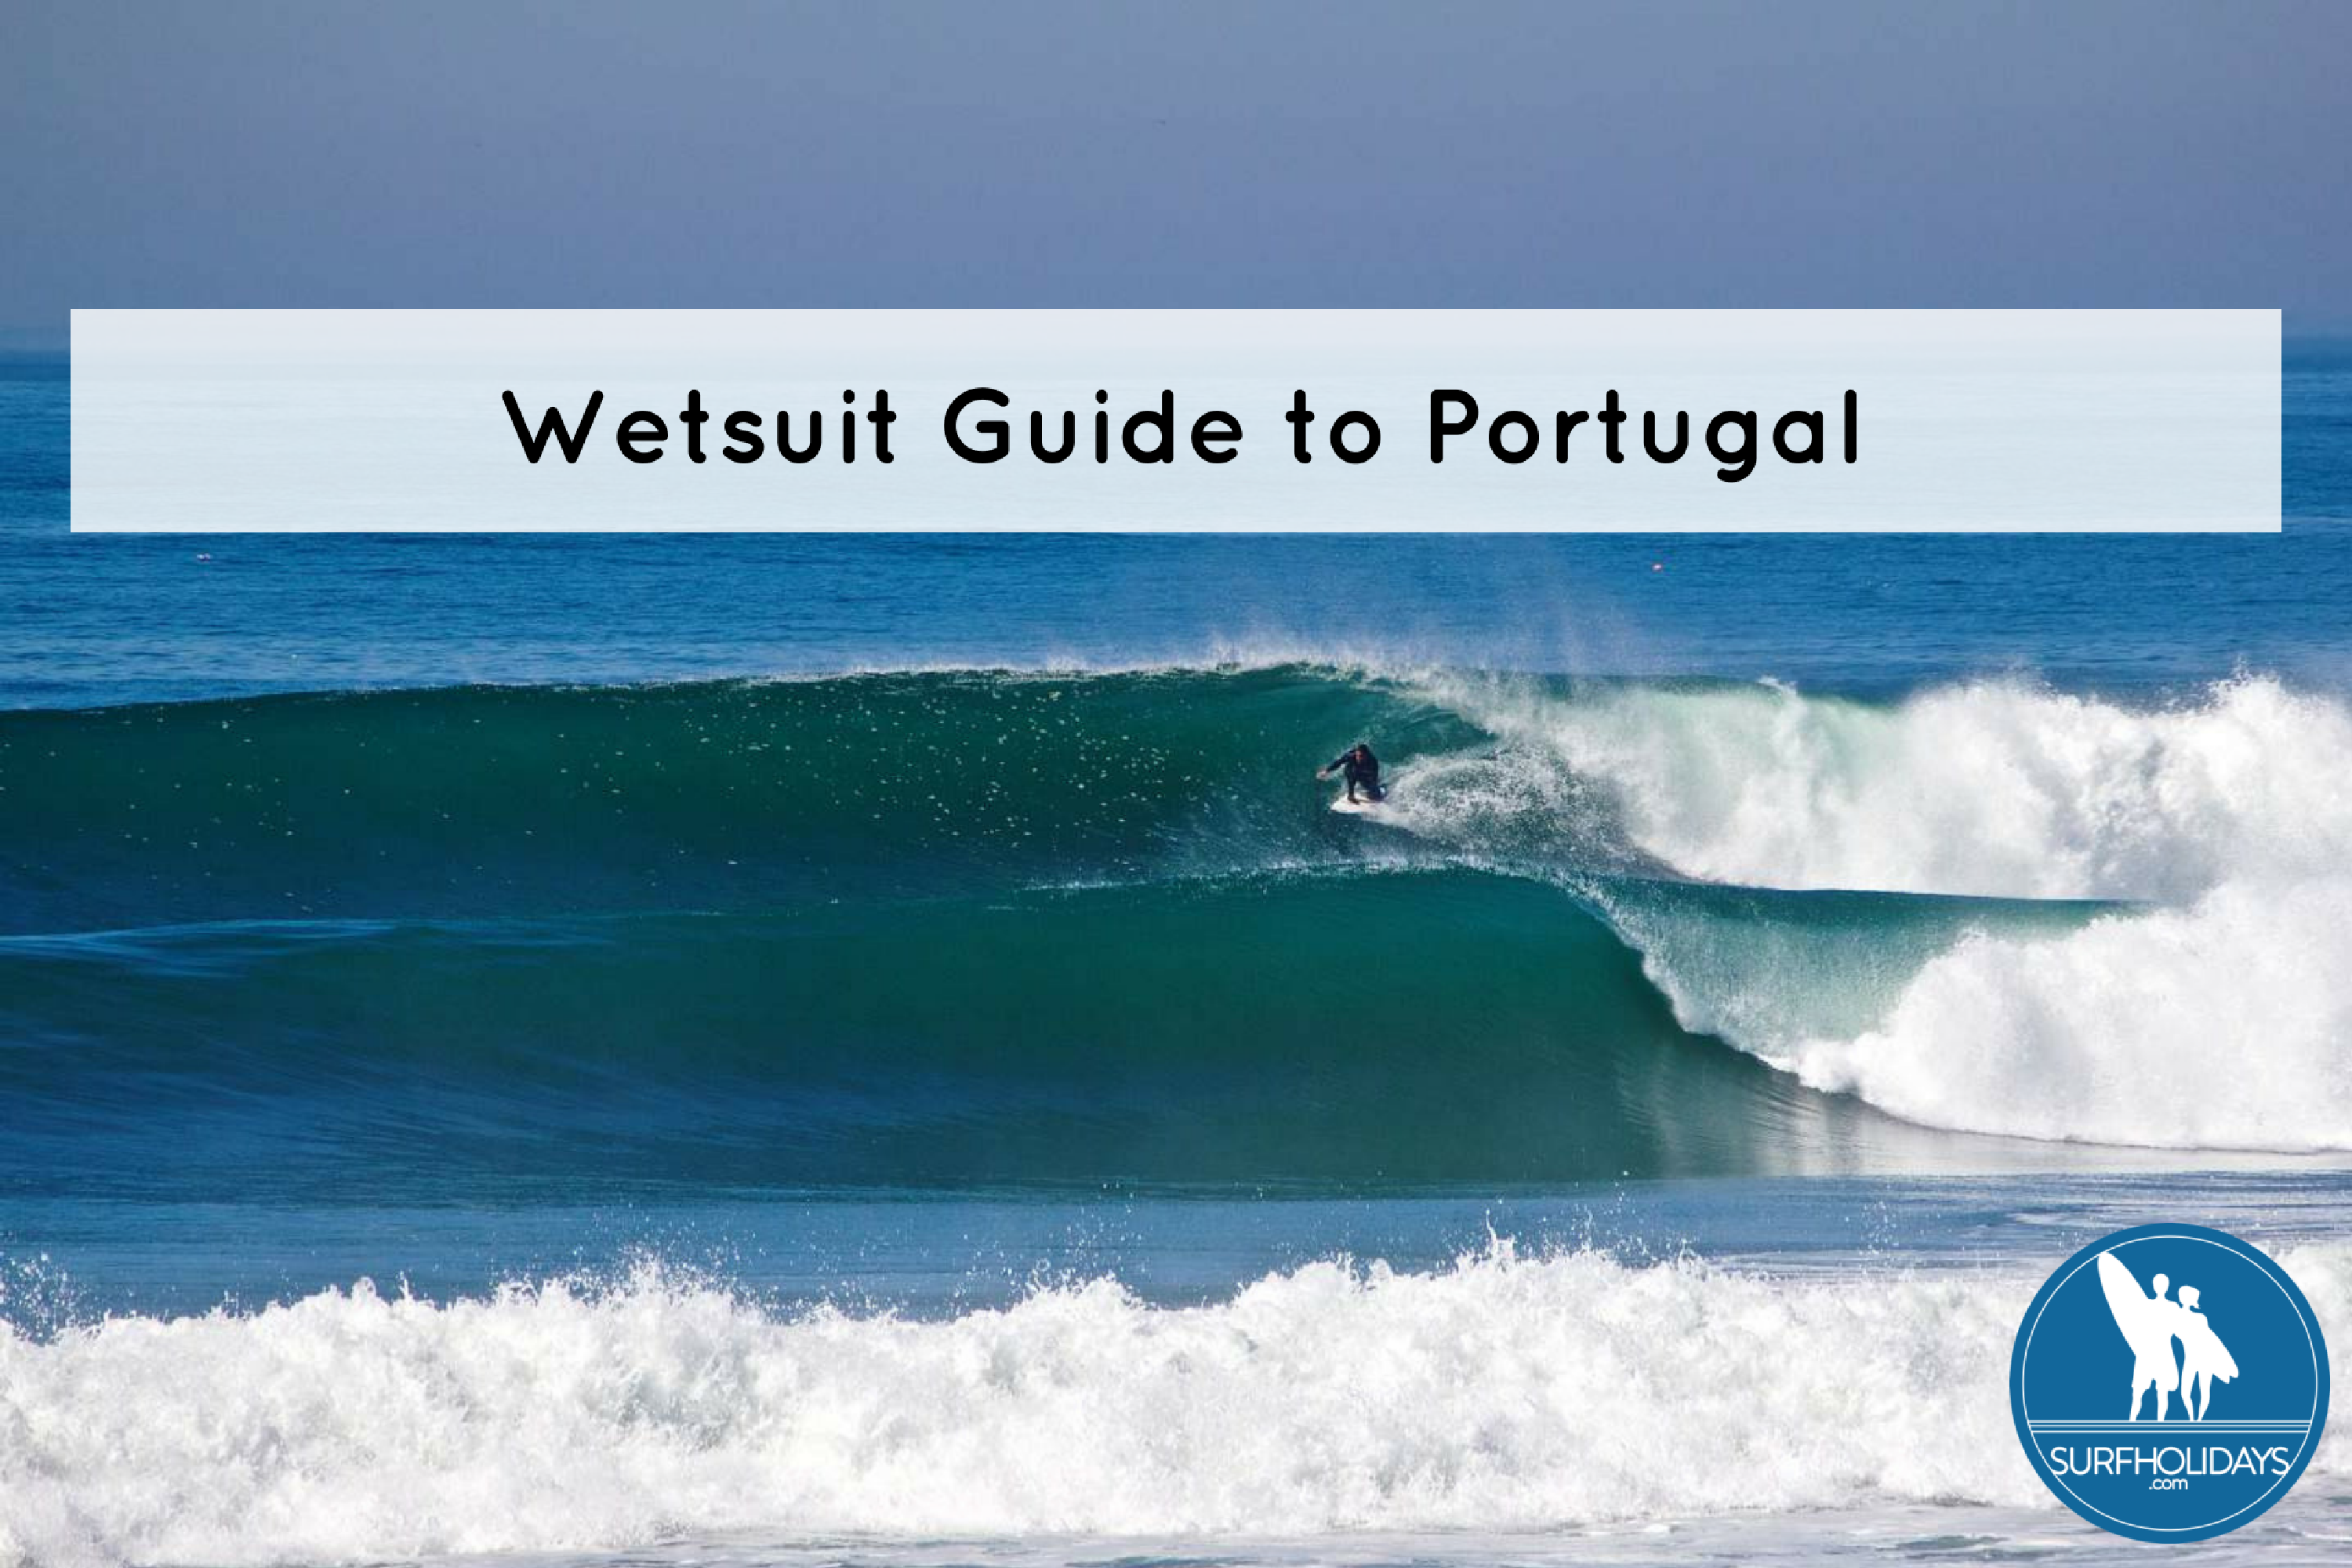 What Type of Wetsuit do I Need in Portugal?